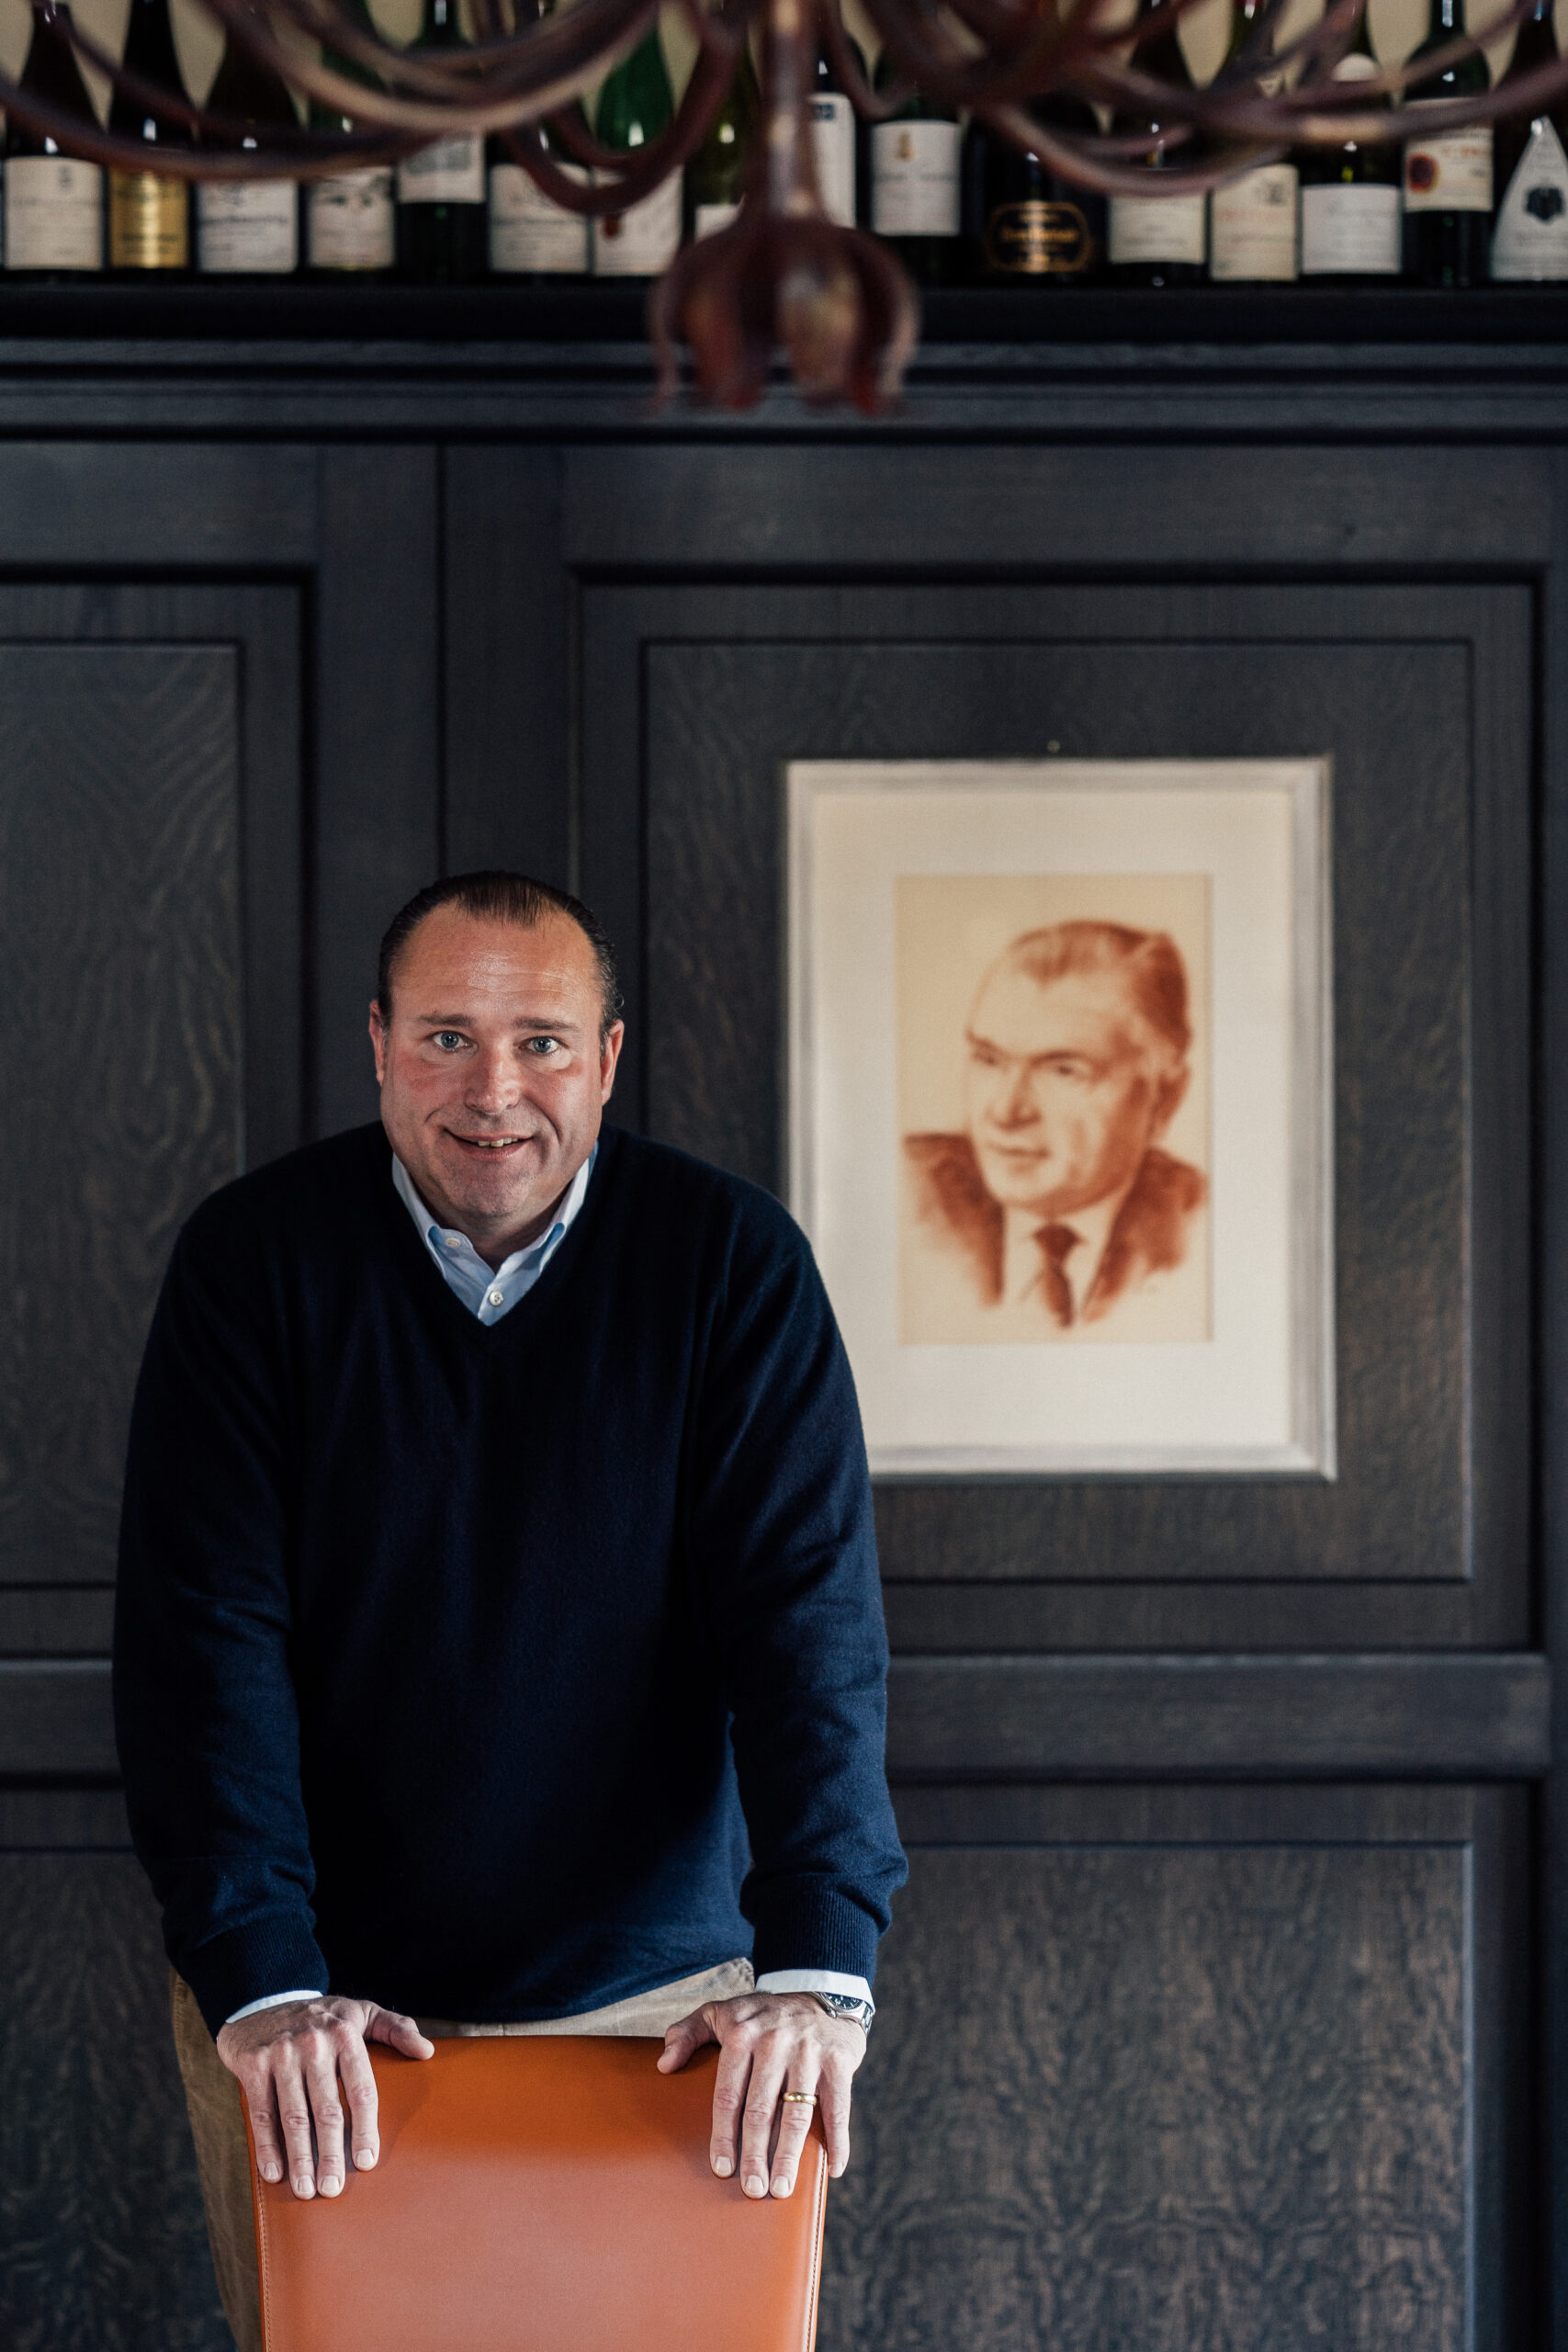 Nik Weis owner of a German winery, posing in front of a potrait of his grandfather.